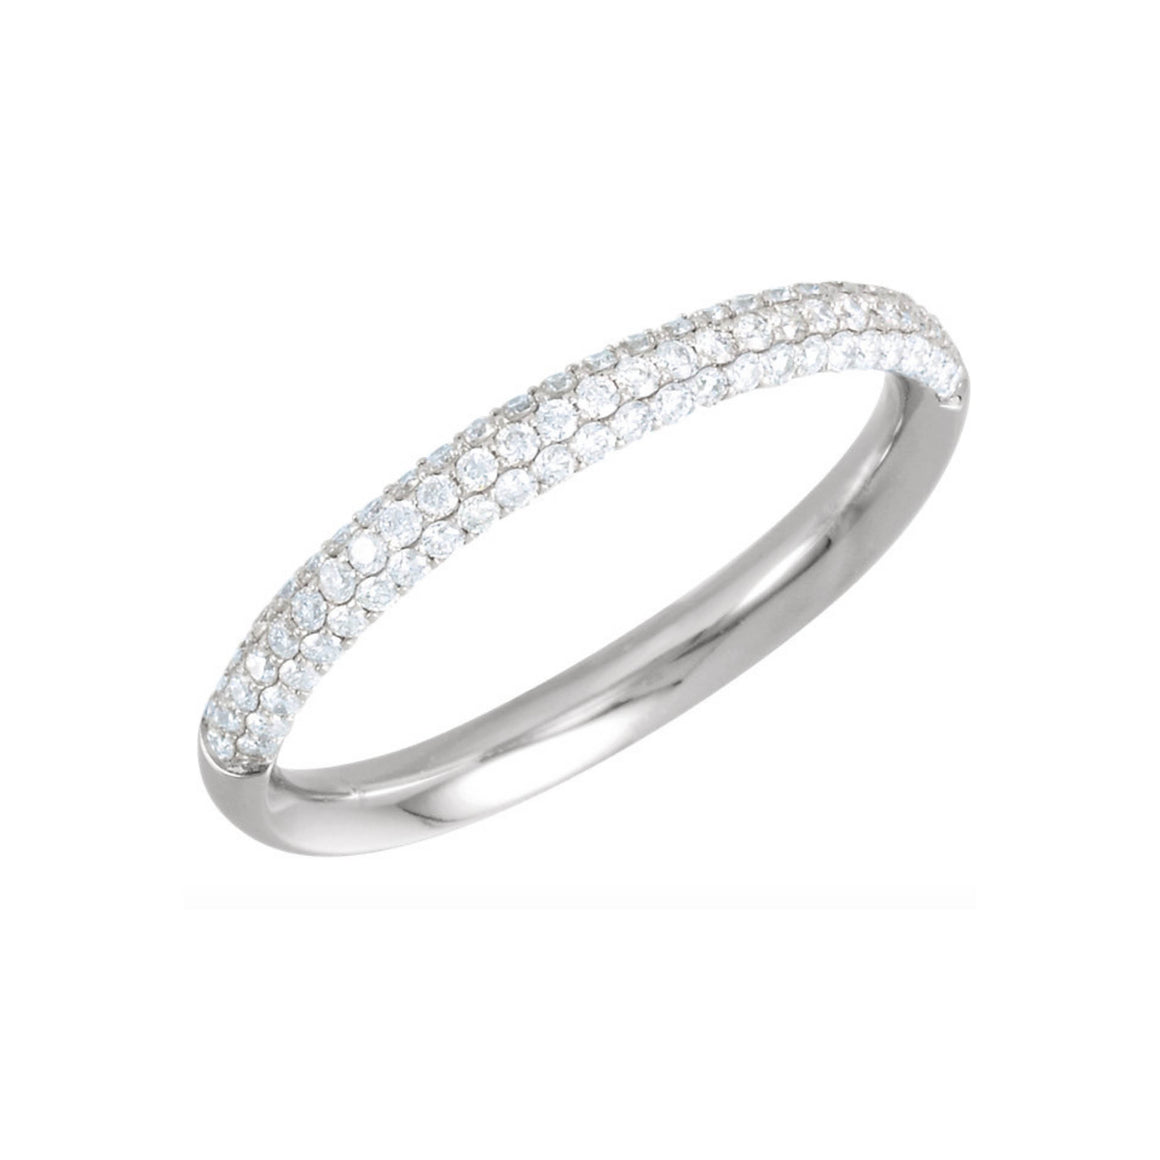 Pave Diamond Stack Band in White, Yellow or Rose Gold - Talisman Collection Fine Jewelers